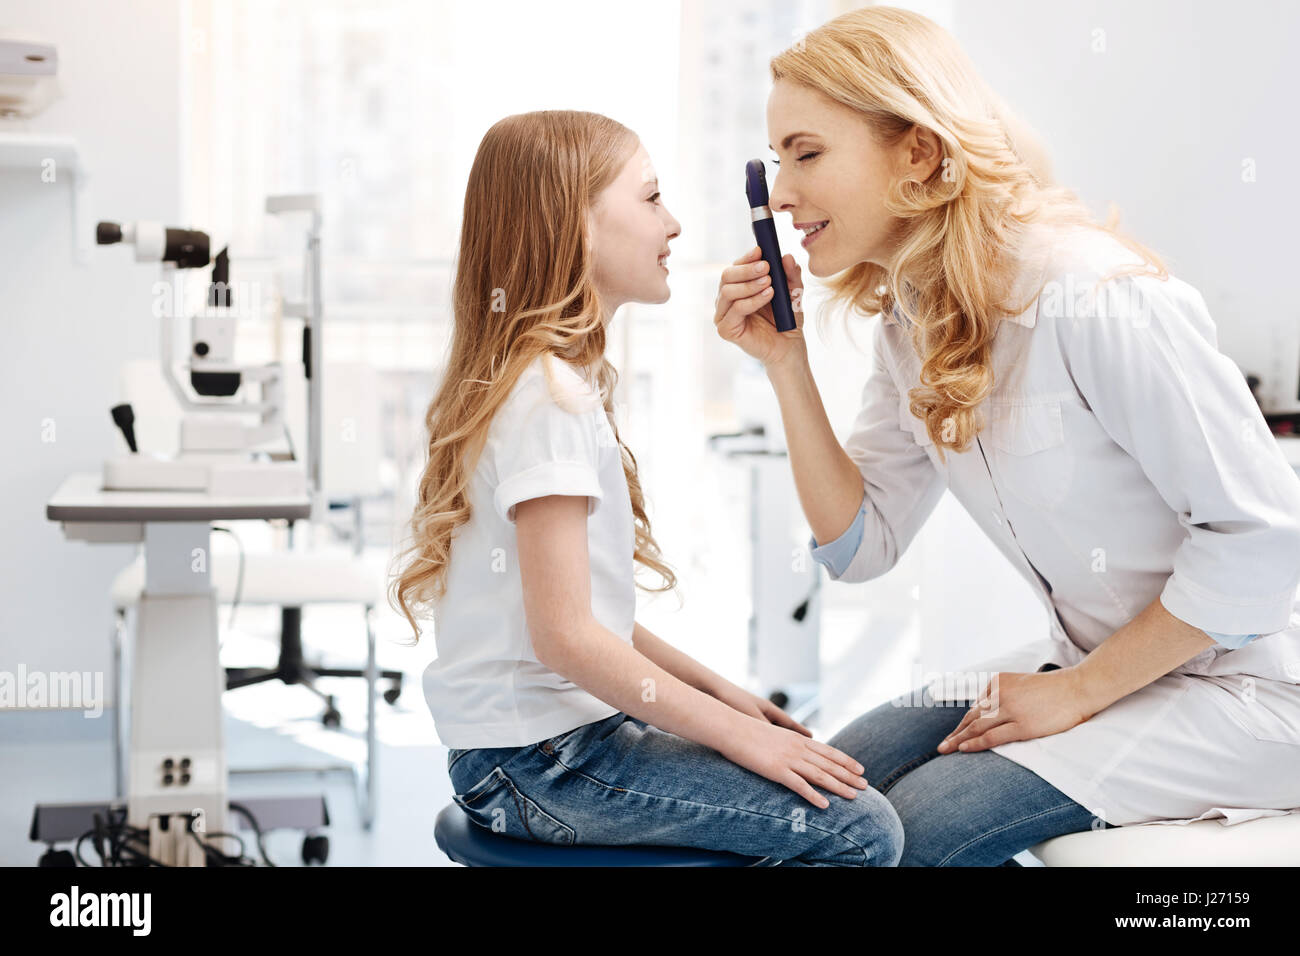 Capable private doctor running a routine checkup - Stock Image